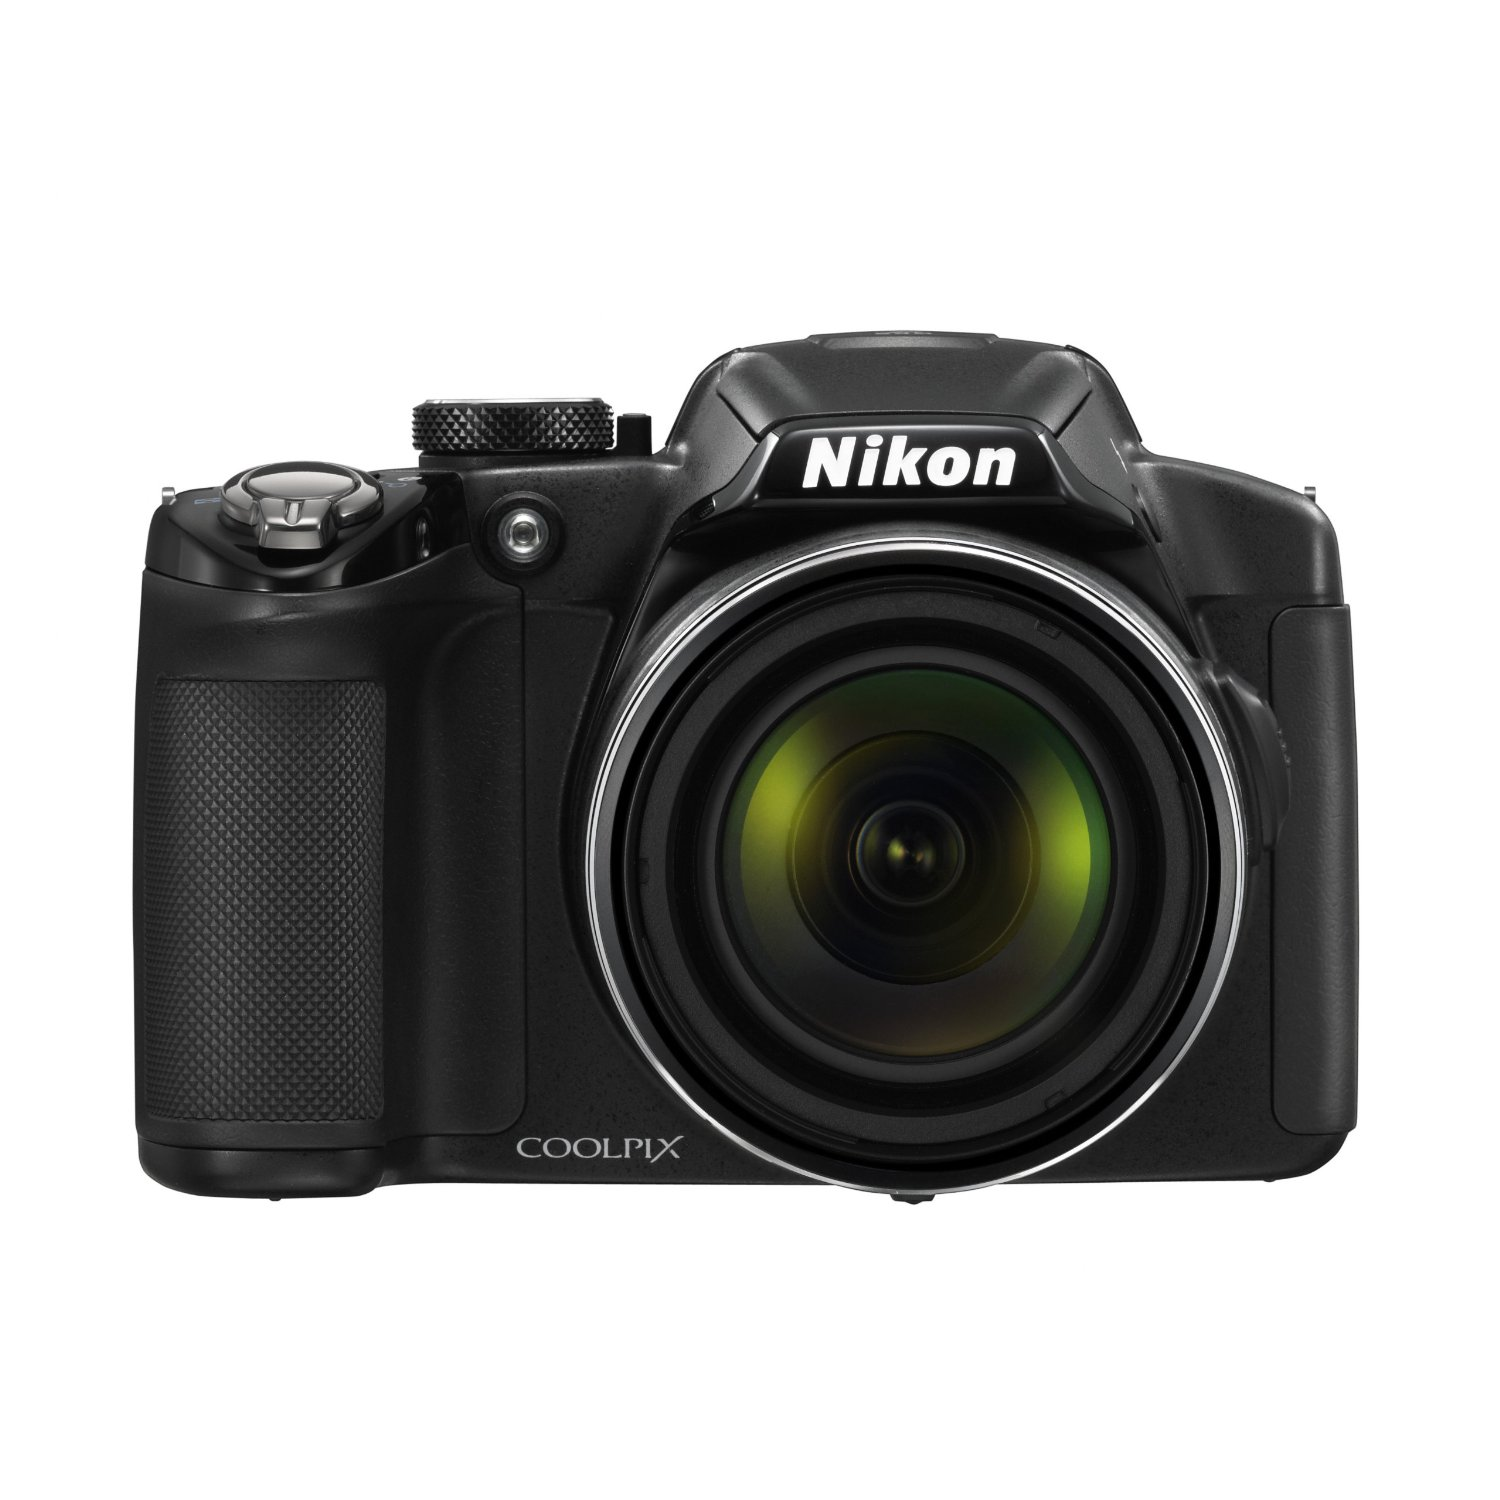 Nikon+COOLPIX+P510+16.1+MP+CMOS+Digital+Camera.jpg